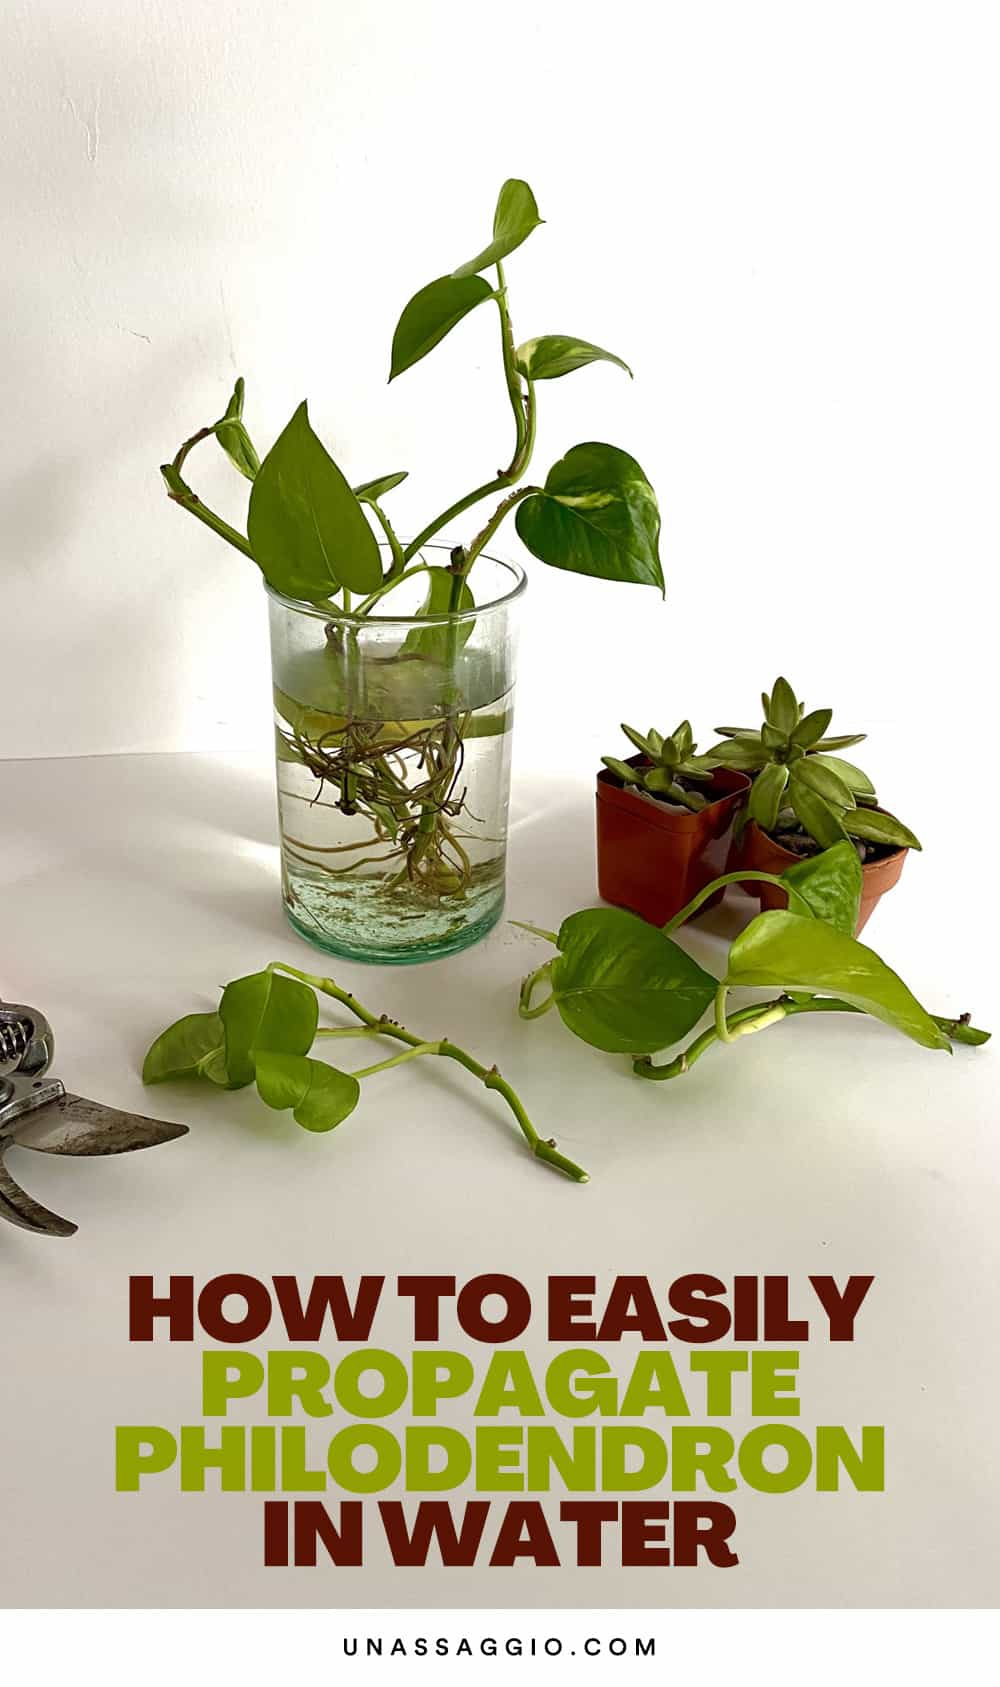 Steps to Propagate The Philodendron In Water